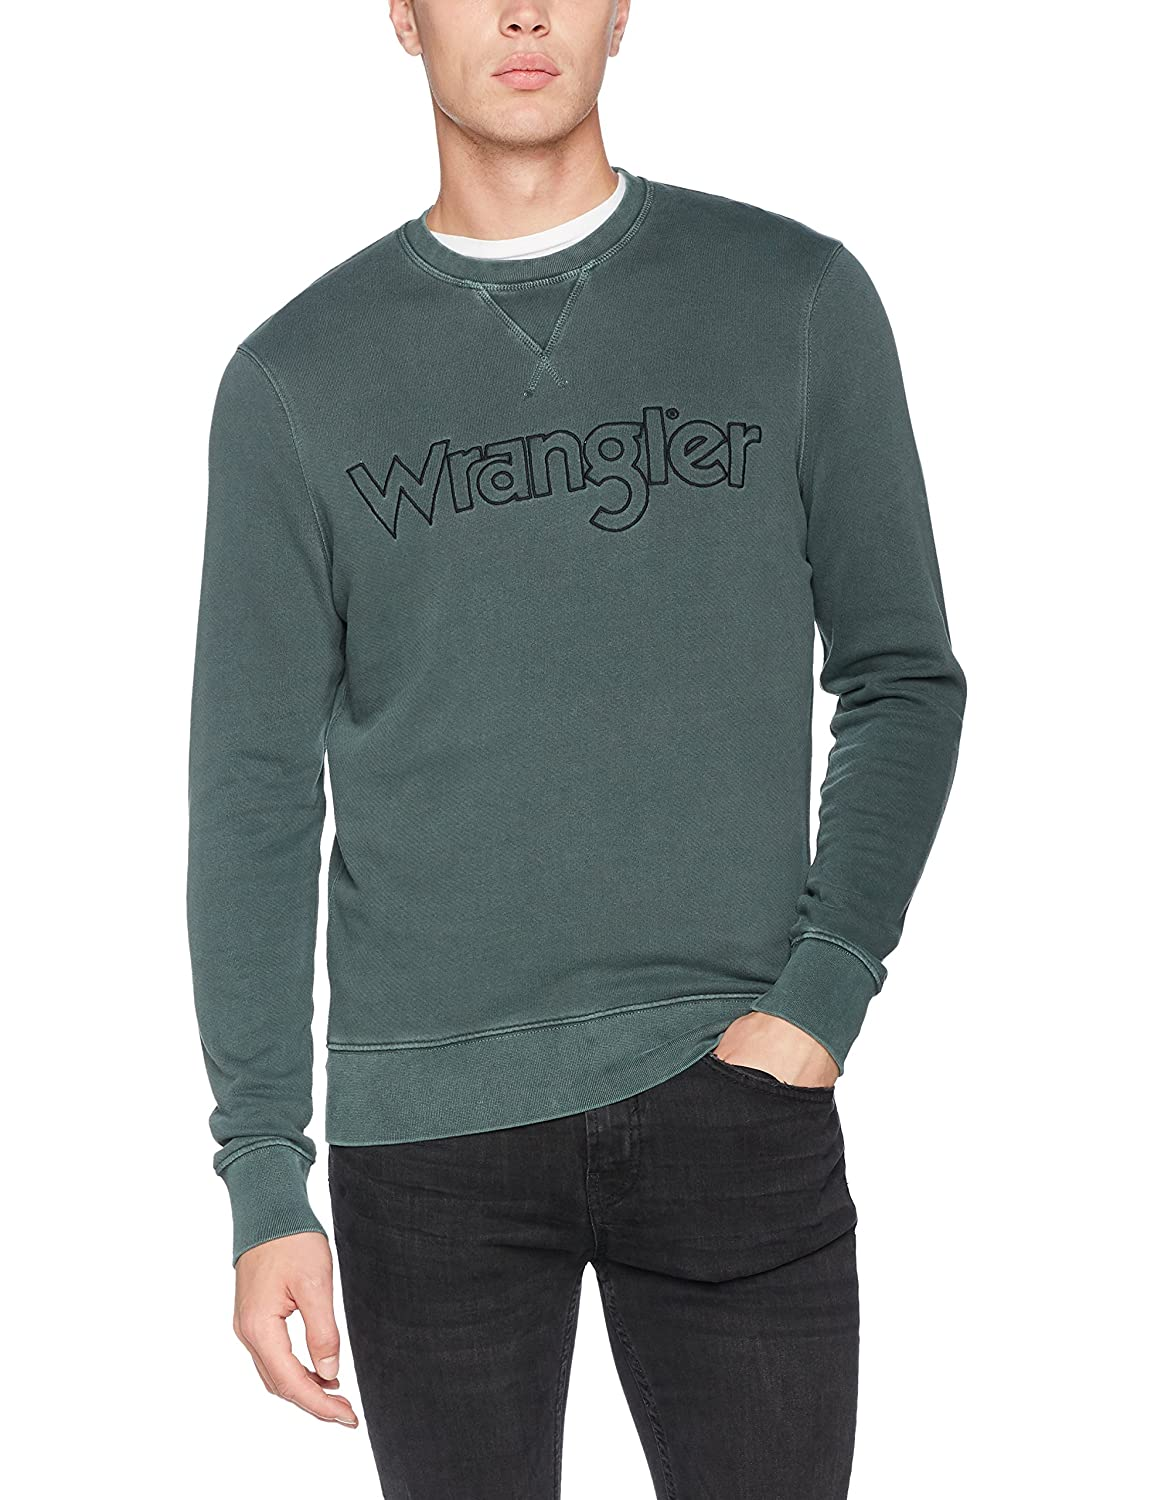 Wrangler Authentic Crew Sweat Gables Sudadera para Hombre